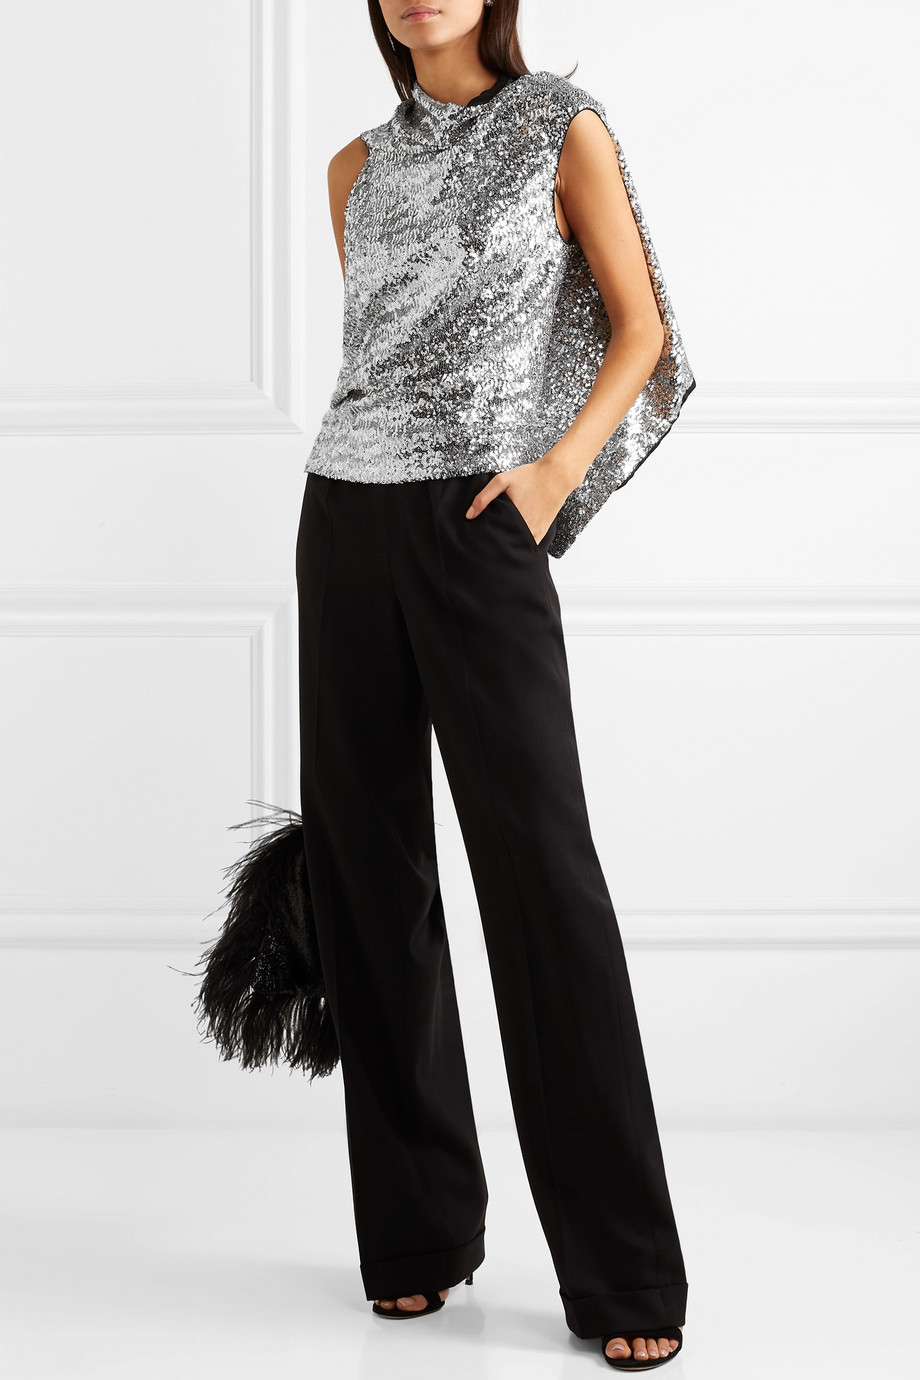 ROLAND MOURET Eugene open-back draped sequined crepe top - what to wear to a new year's party